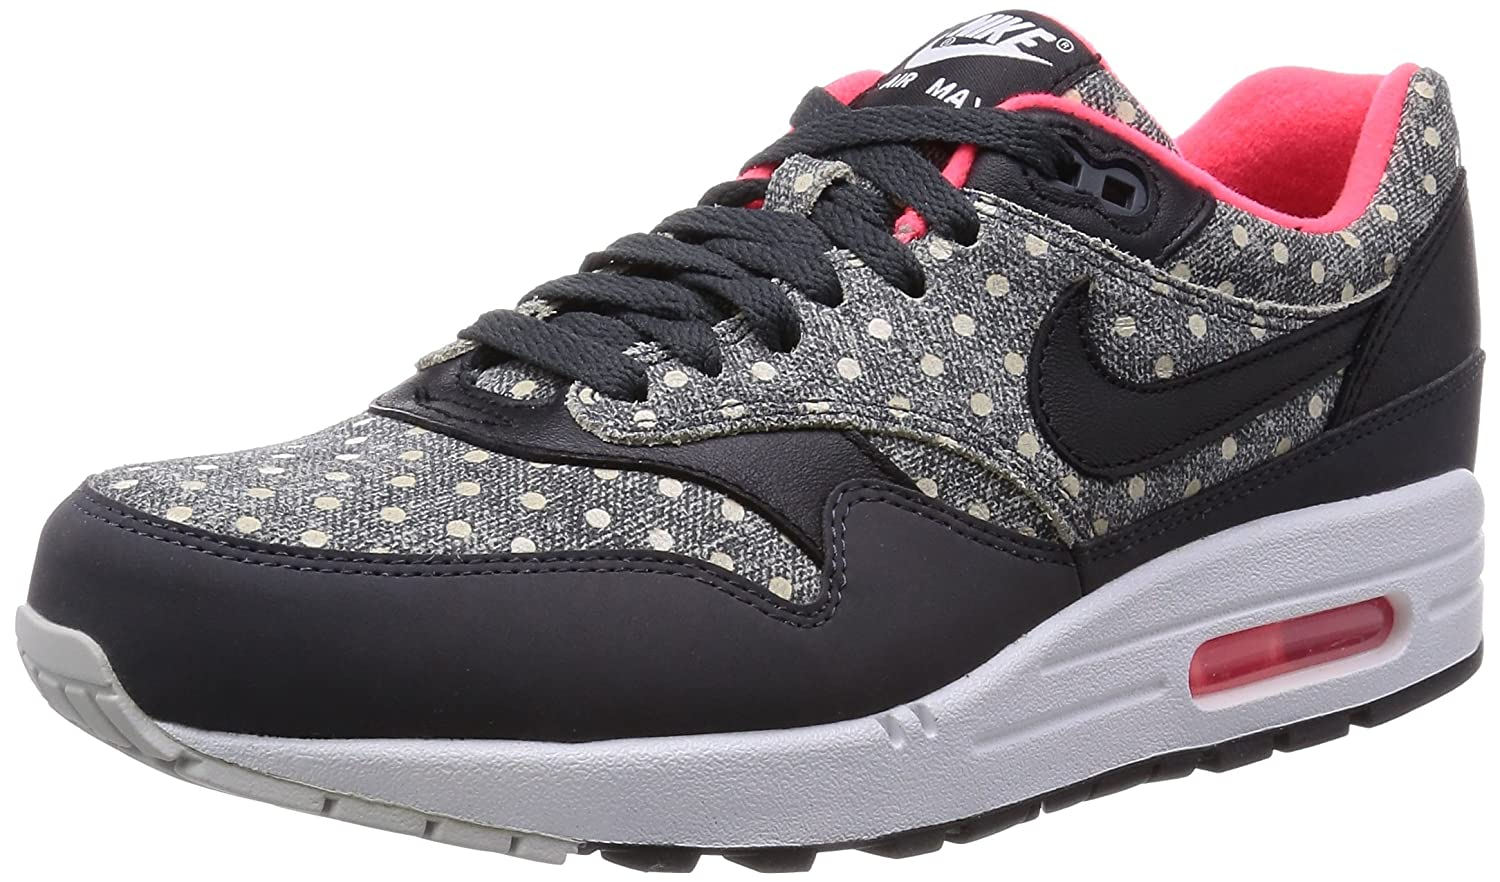 Nike Shoes Sale | Mens Nike Air Max 1 Leather Premium Shoe